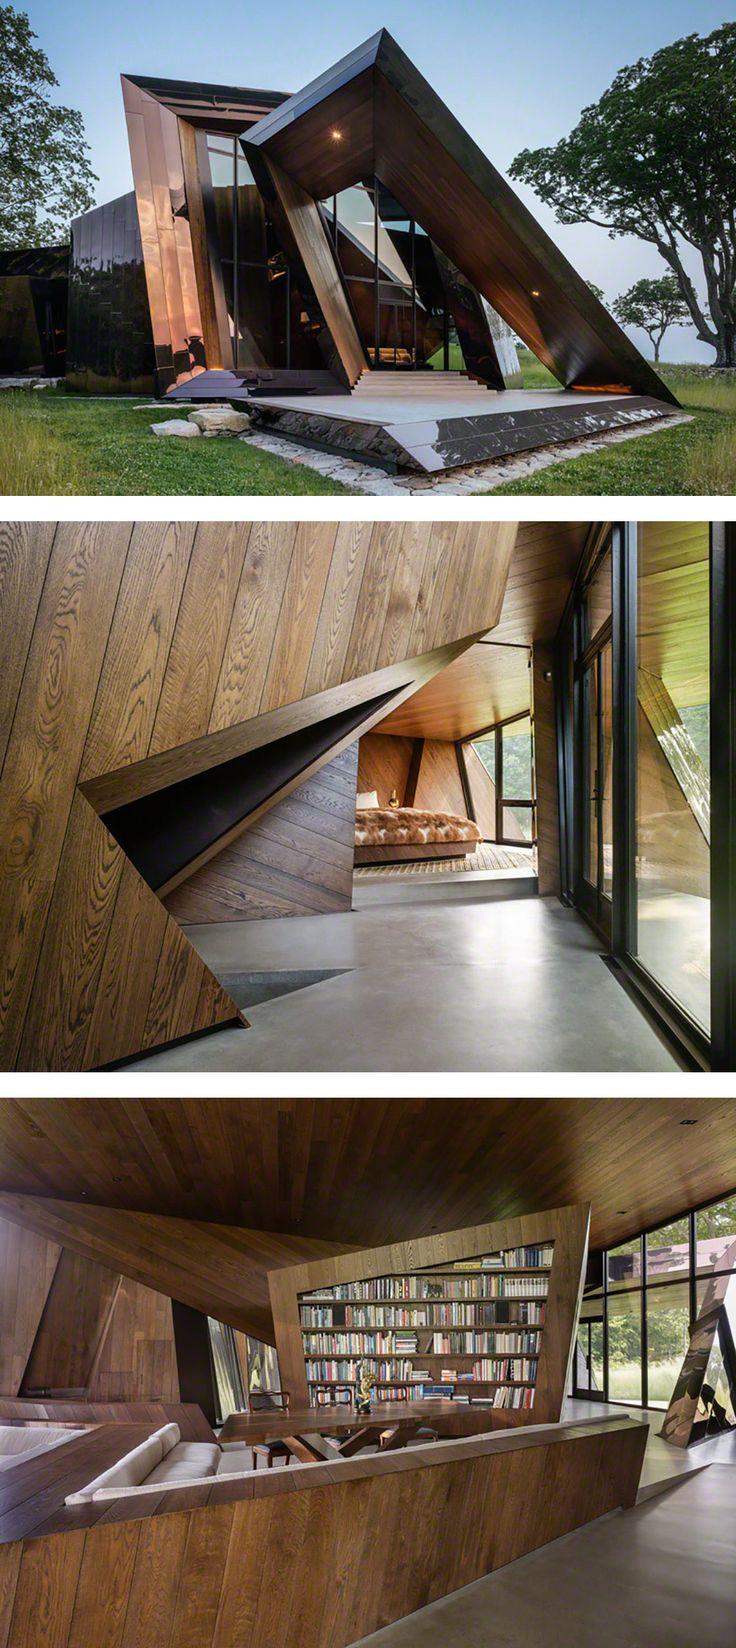 Daniel Libeskind 18.36.54 House: a Sculptural Architecture Masterpiece